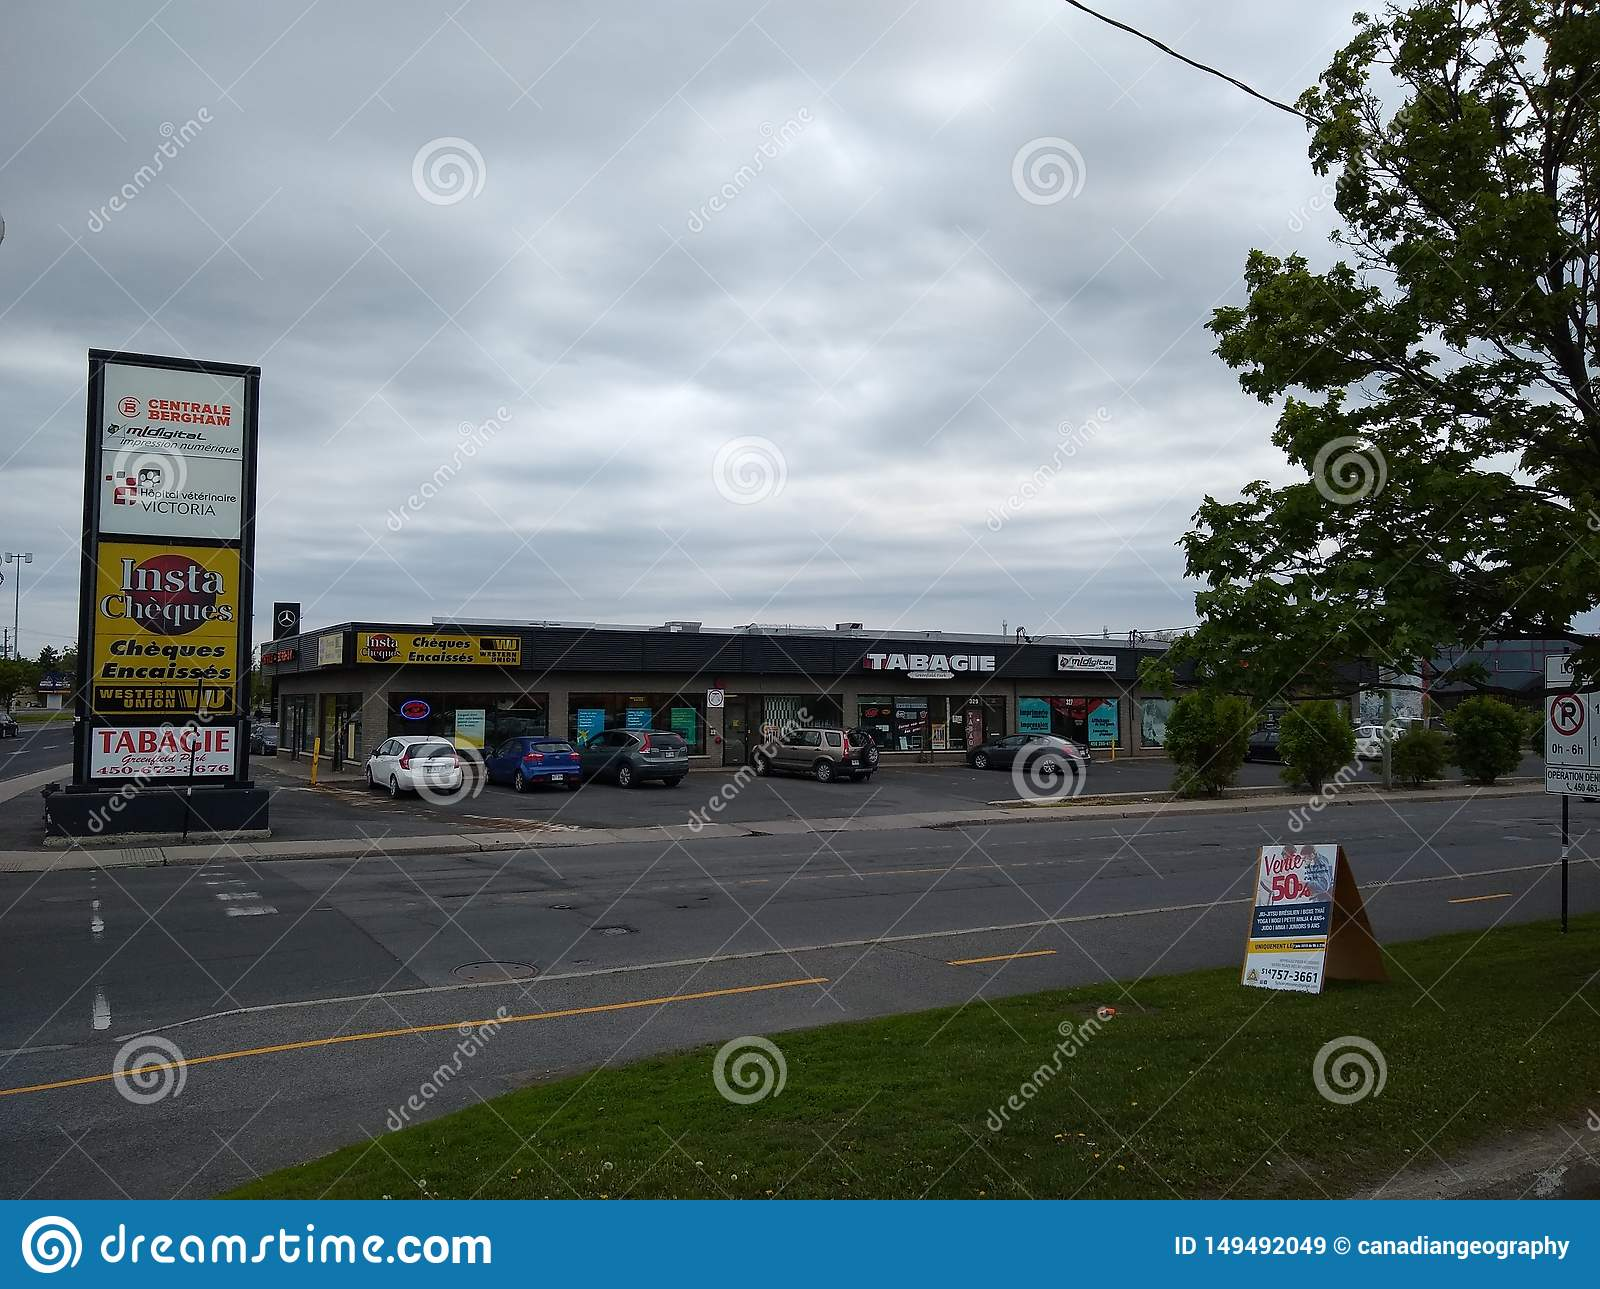 Stores viewed from across the street in Greenfield Park, Longueuil, Quebec, Canada